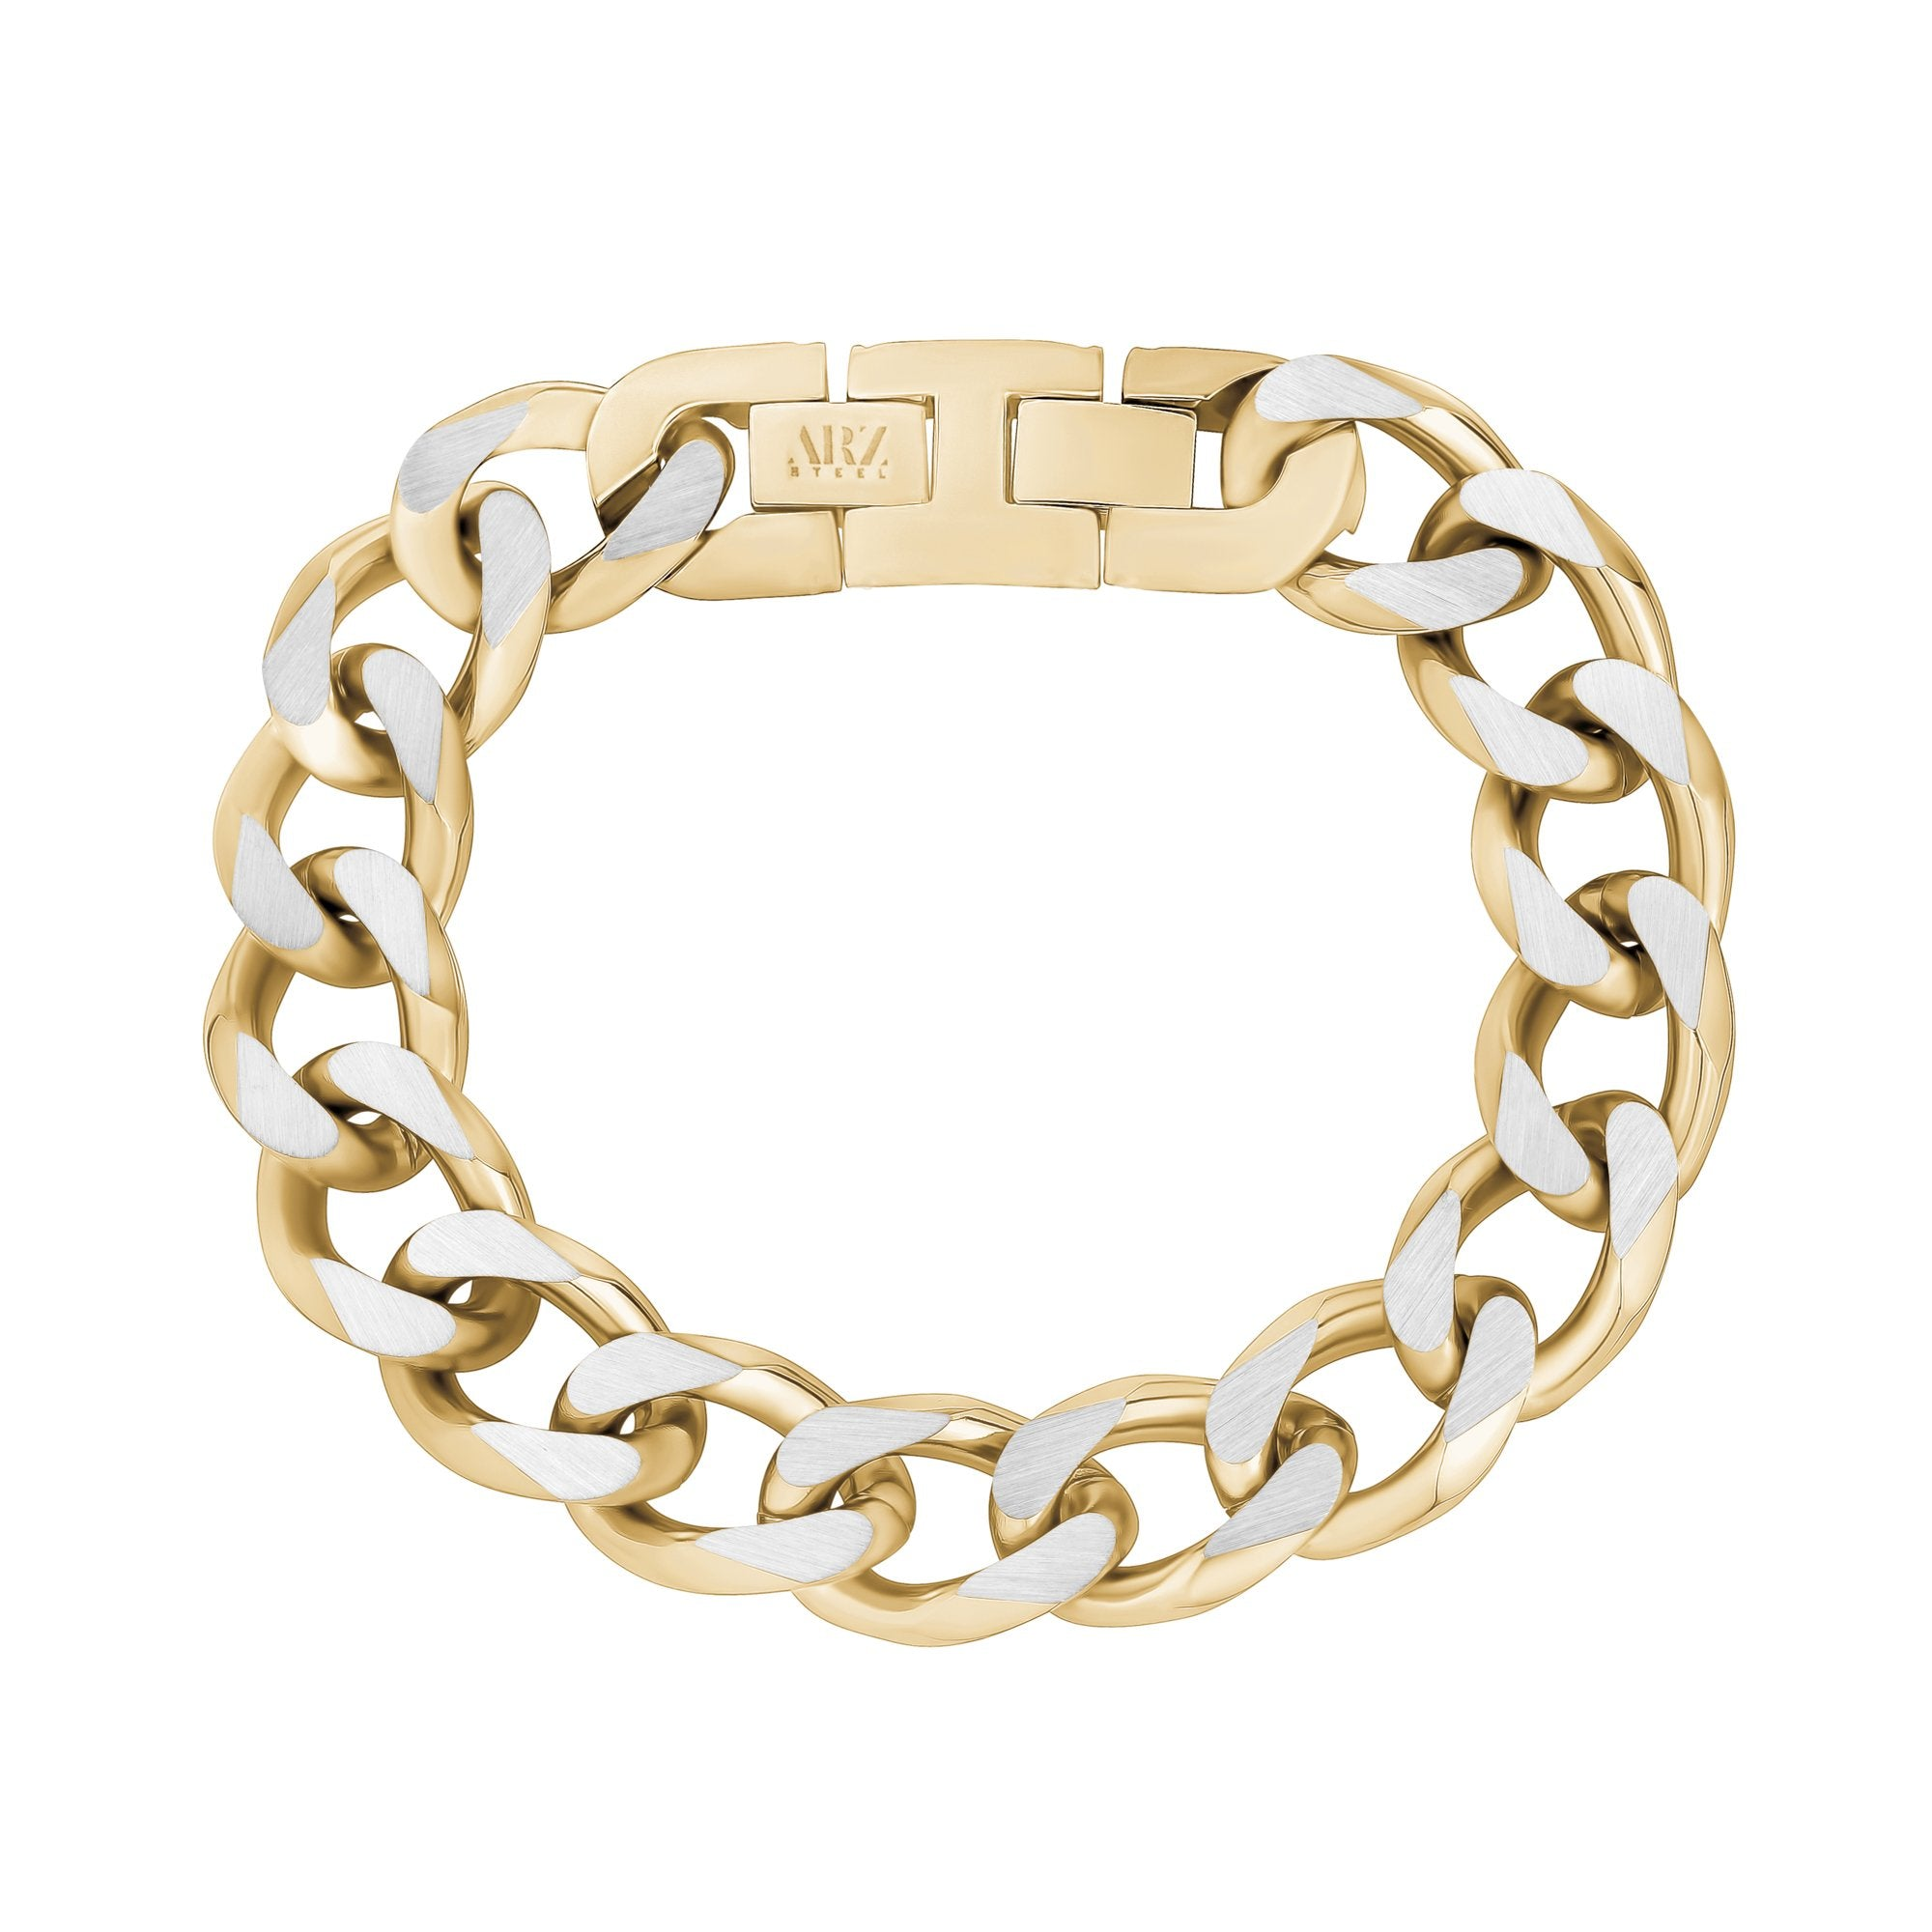 Mens Steel Bracelets - 14mm Gold Two Tone Steel Chunky Cuban Link Bracelet